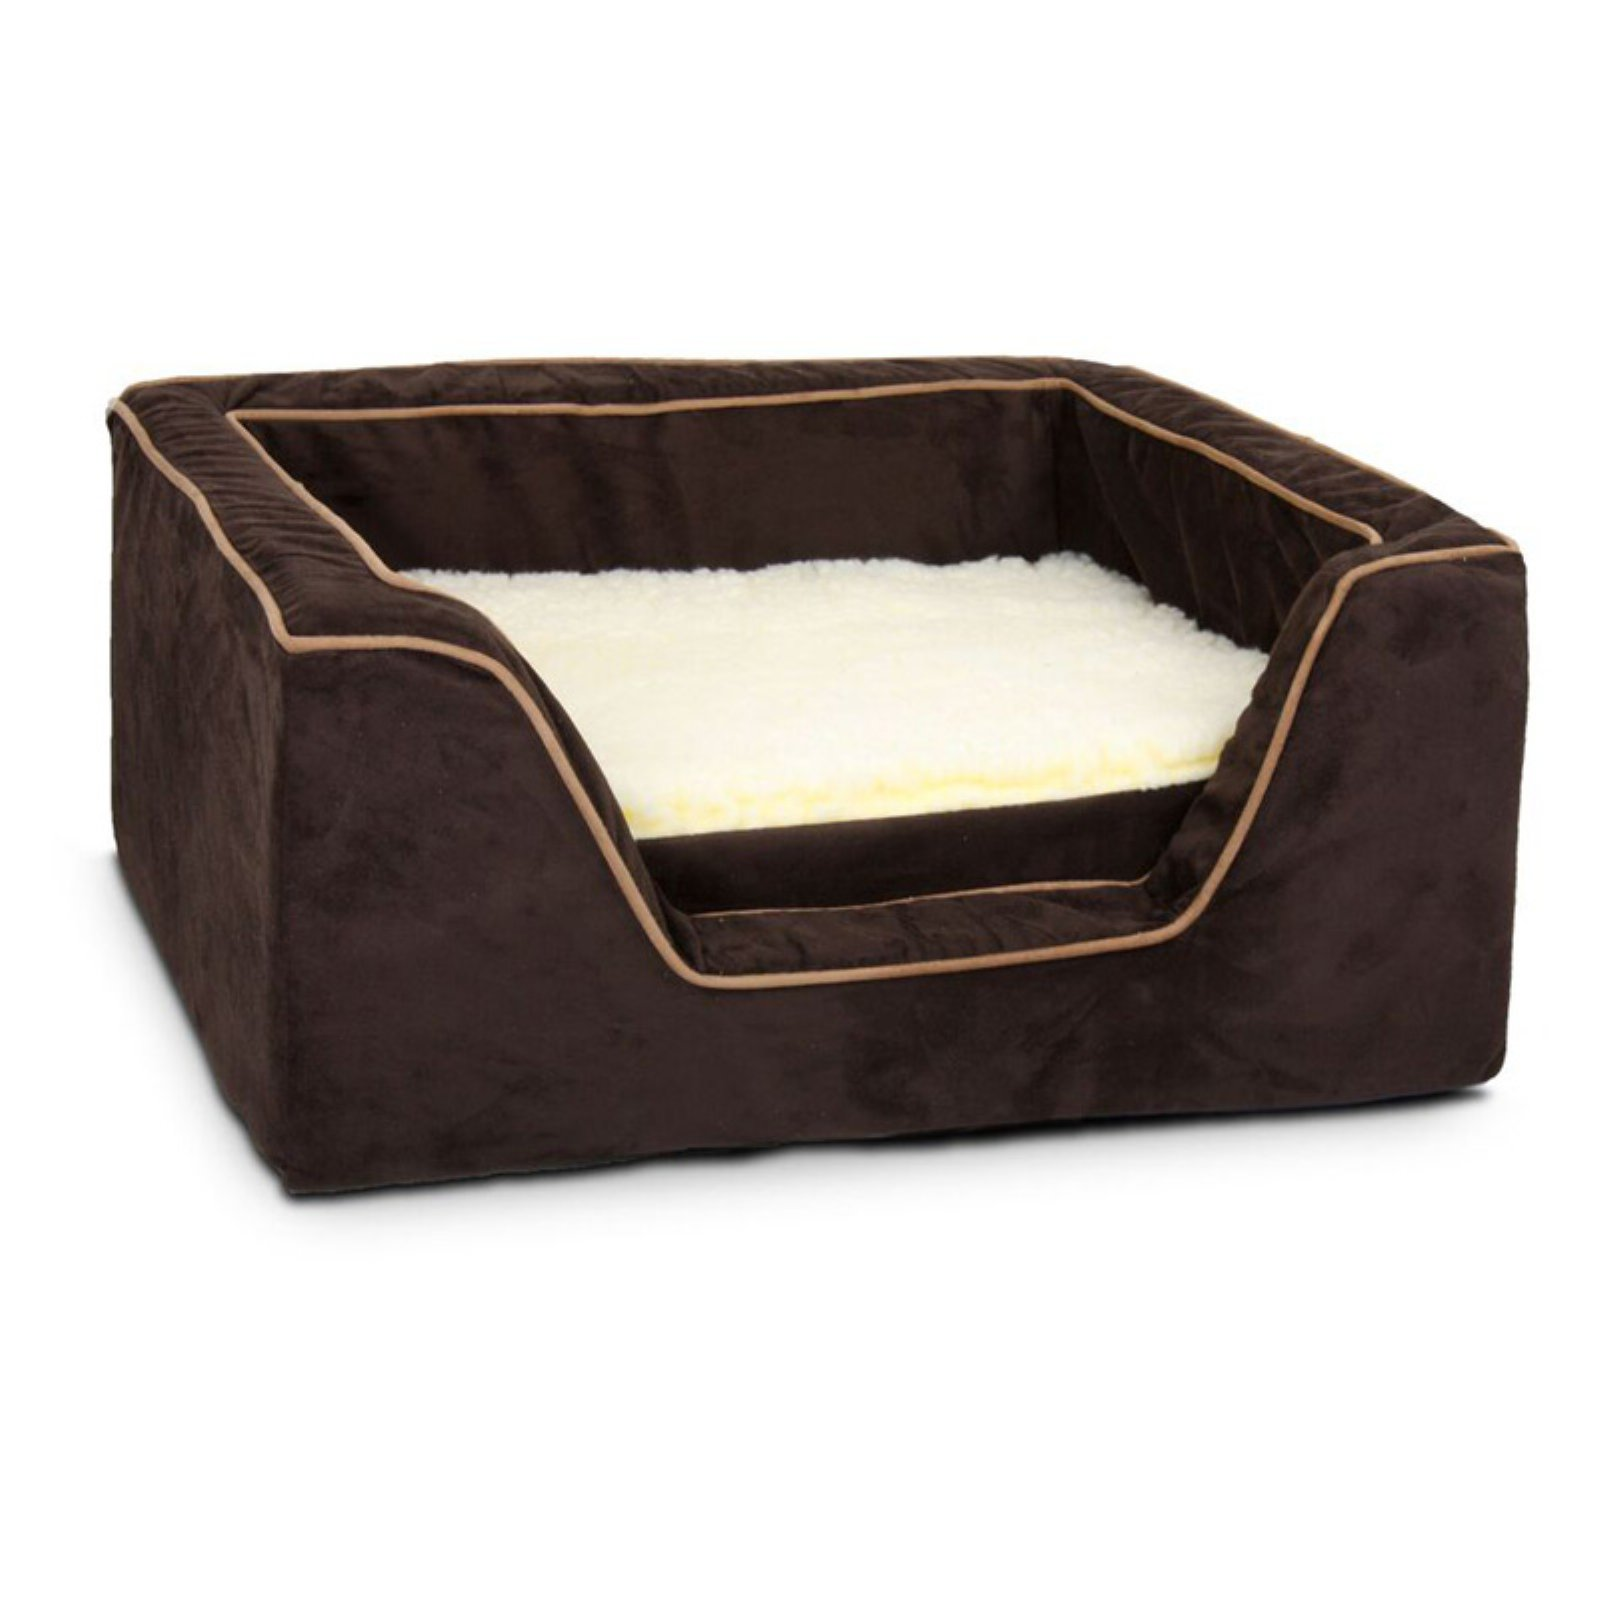 Snoozer Small Memory Foam Square Dog Bed - Peat/Coffee